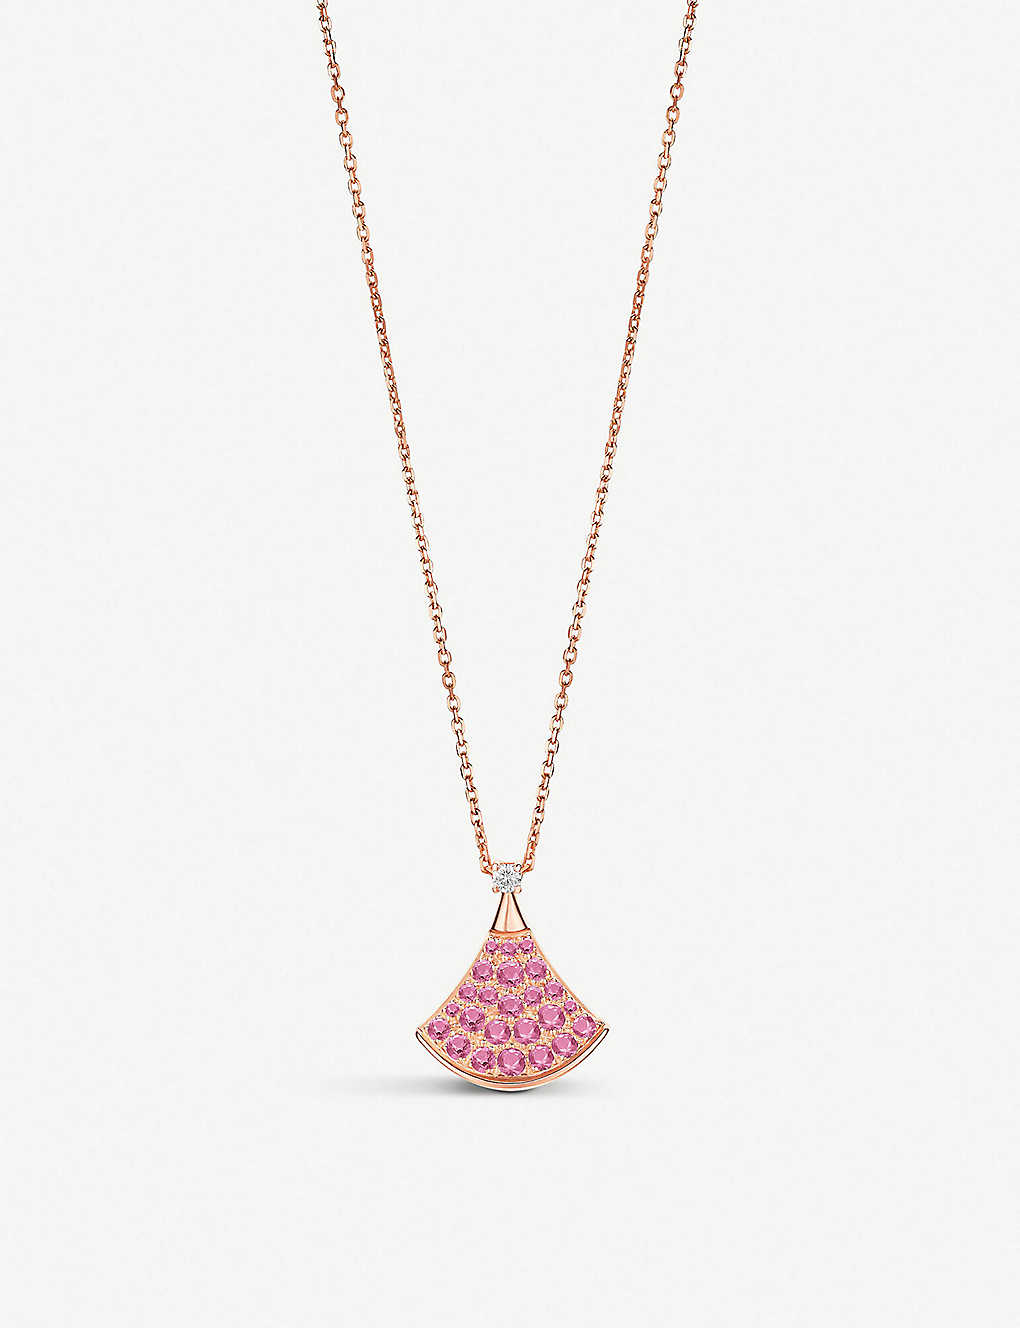 39001085e6a0d BVLGARI Diva's Dream 18ct rose-gold, pink sapphire and diamond necklace